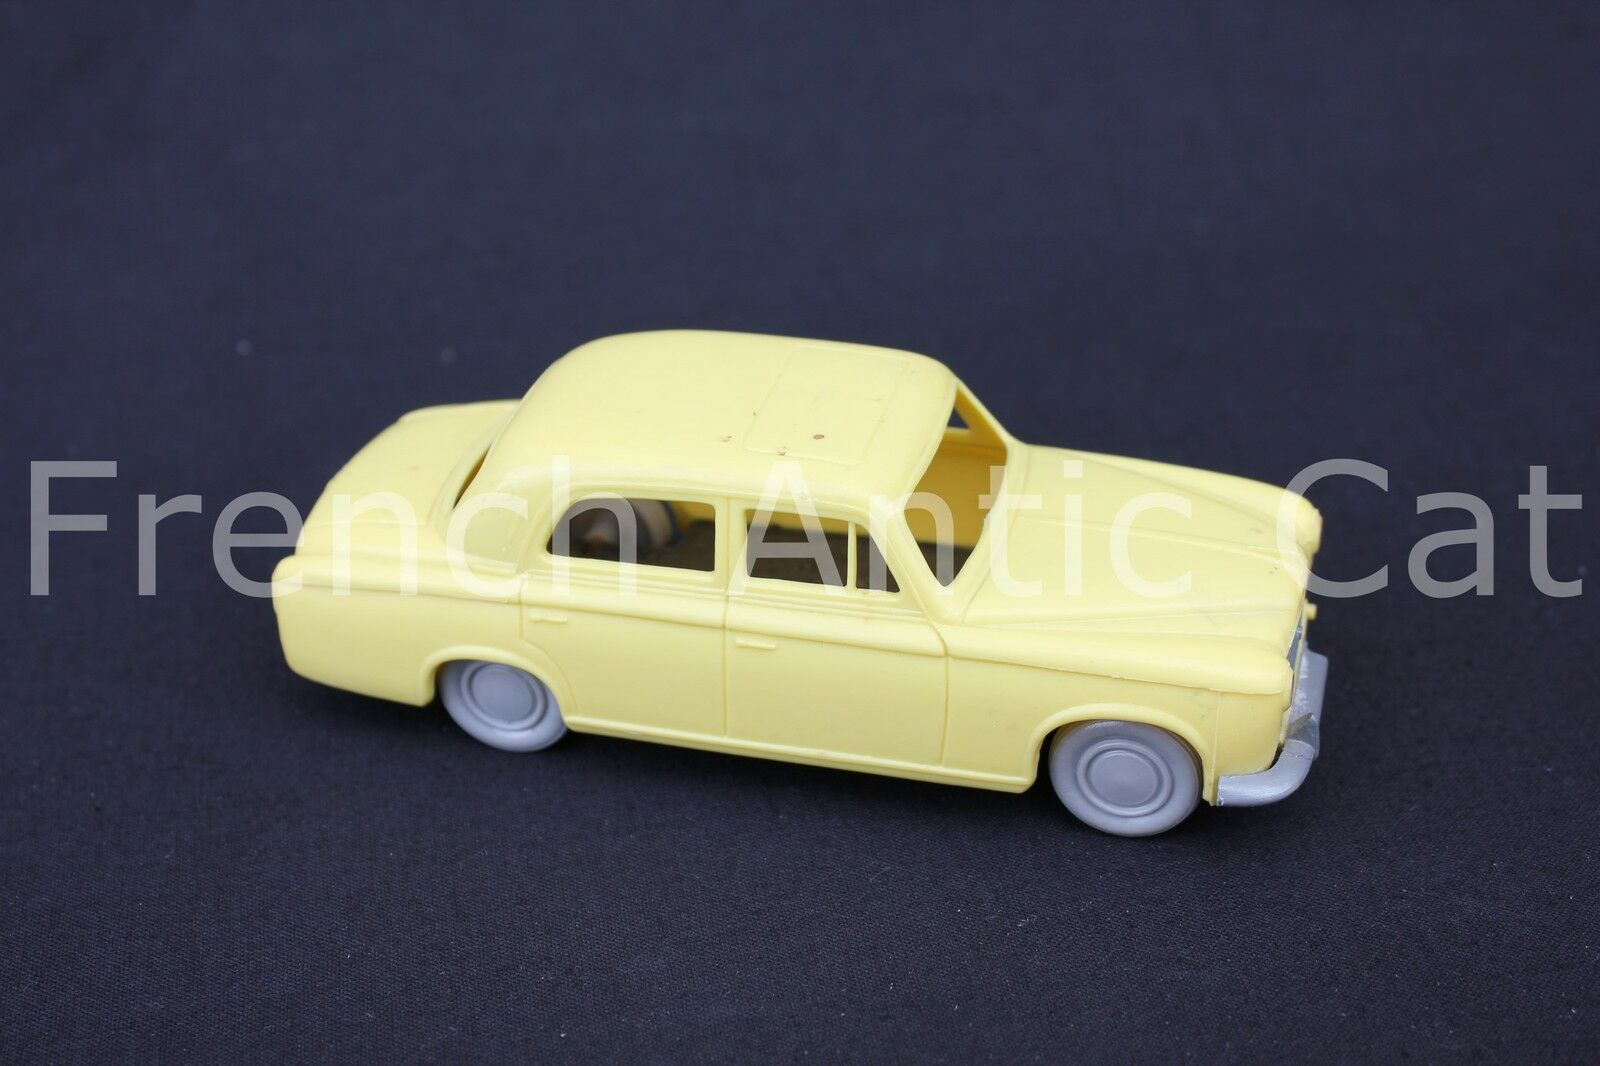 G928 voiture 1 32 BS Beuzen Sordet  PEUGEOT 403 Made in france coq Jaune  approvisionnement direct des fabricants